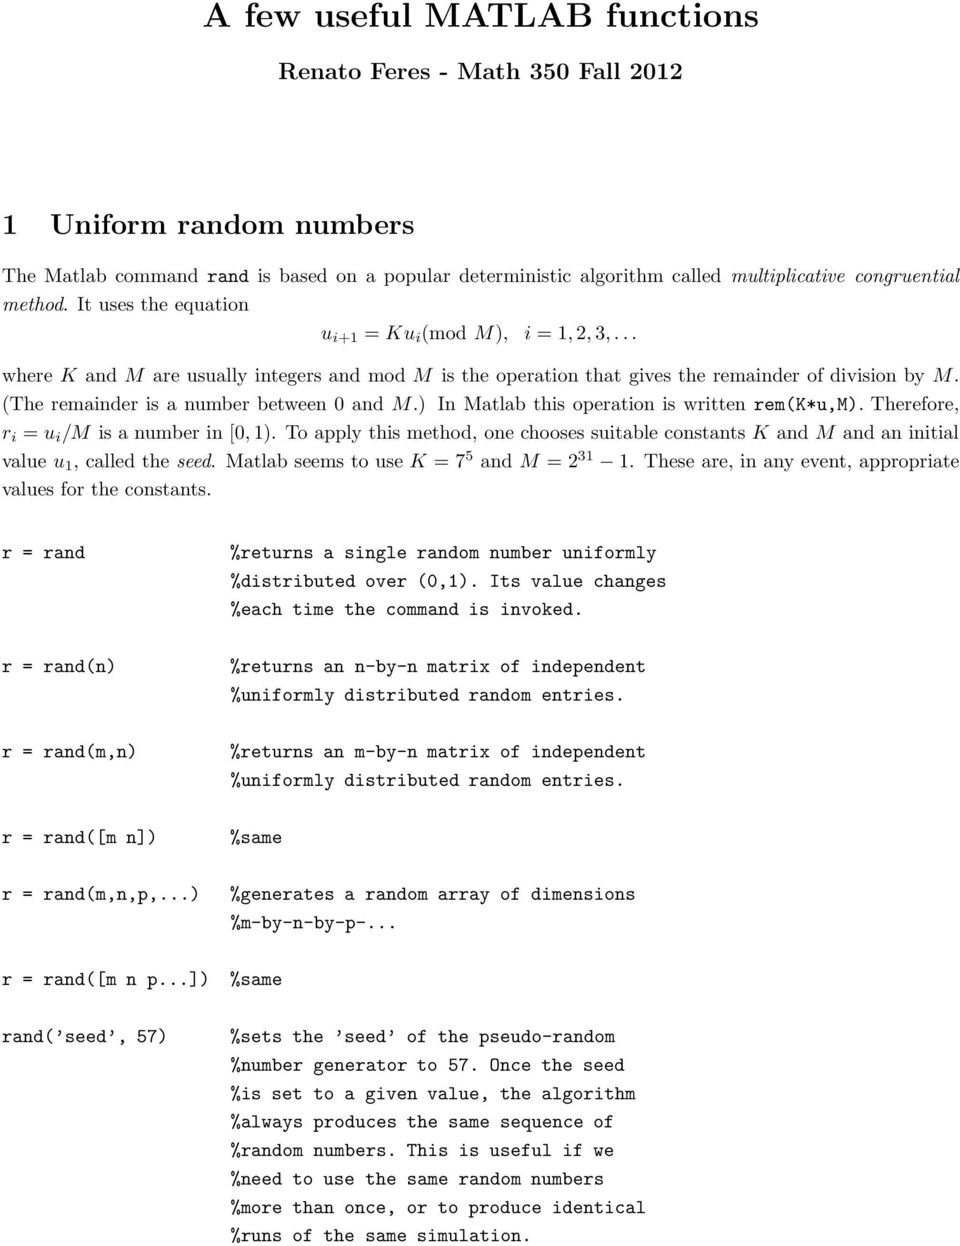 A few useful MATLAB functions - PDF